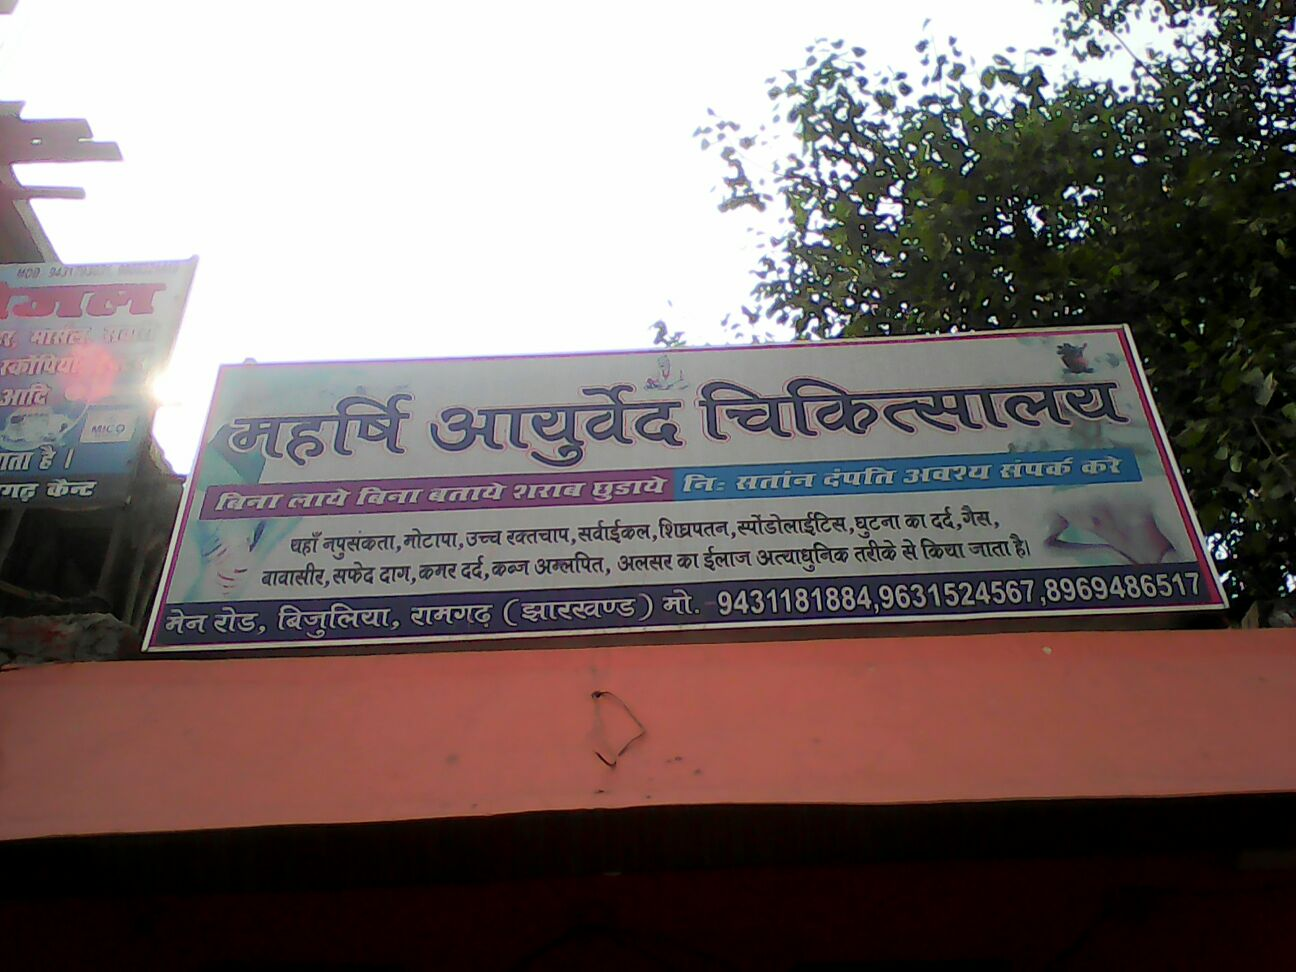 TOP SEXOLOGICAL CHIKITSALAYA IN RAMGARH